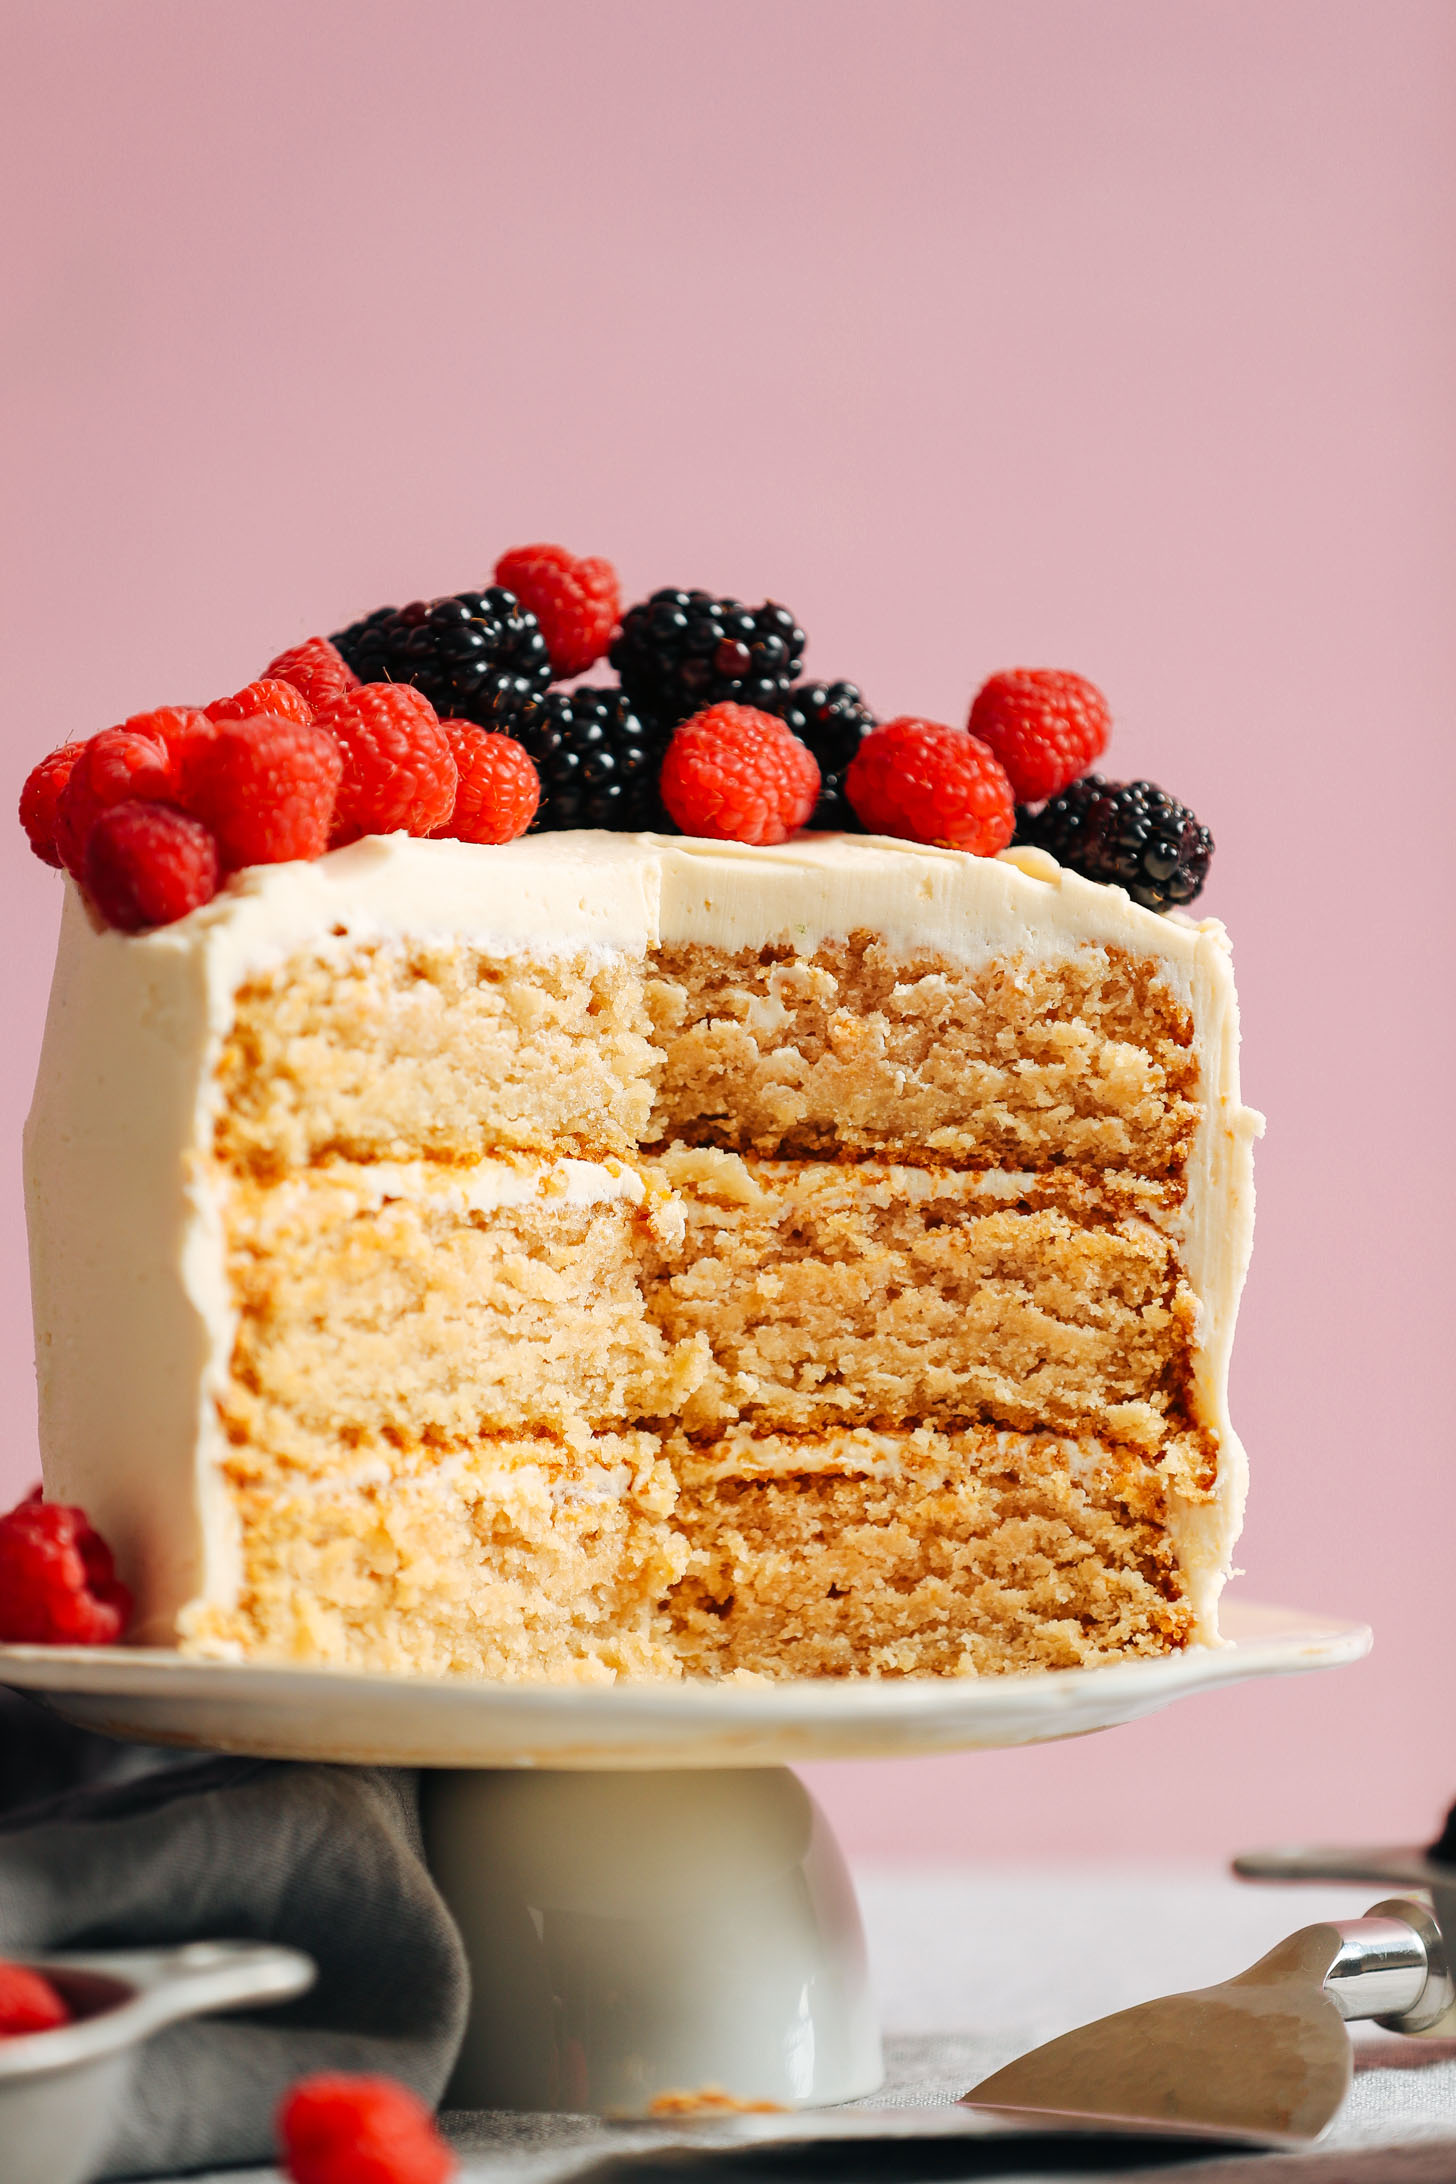 View of the cake layers in our 1-Bowl Vegan Gluten-Free Vanillla Cake topped with fresh berries